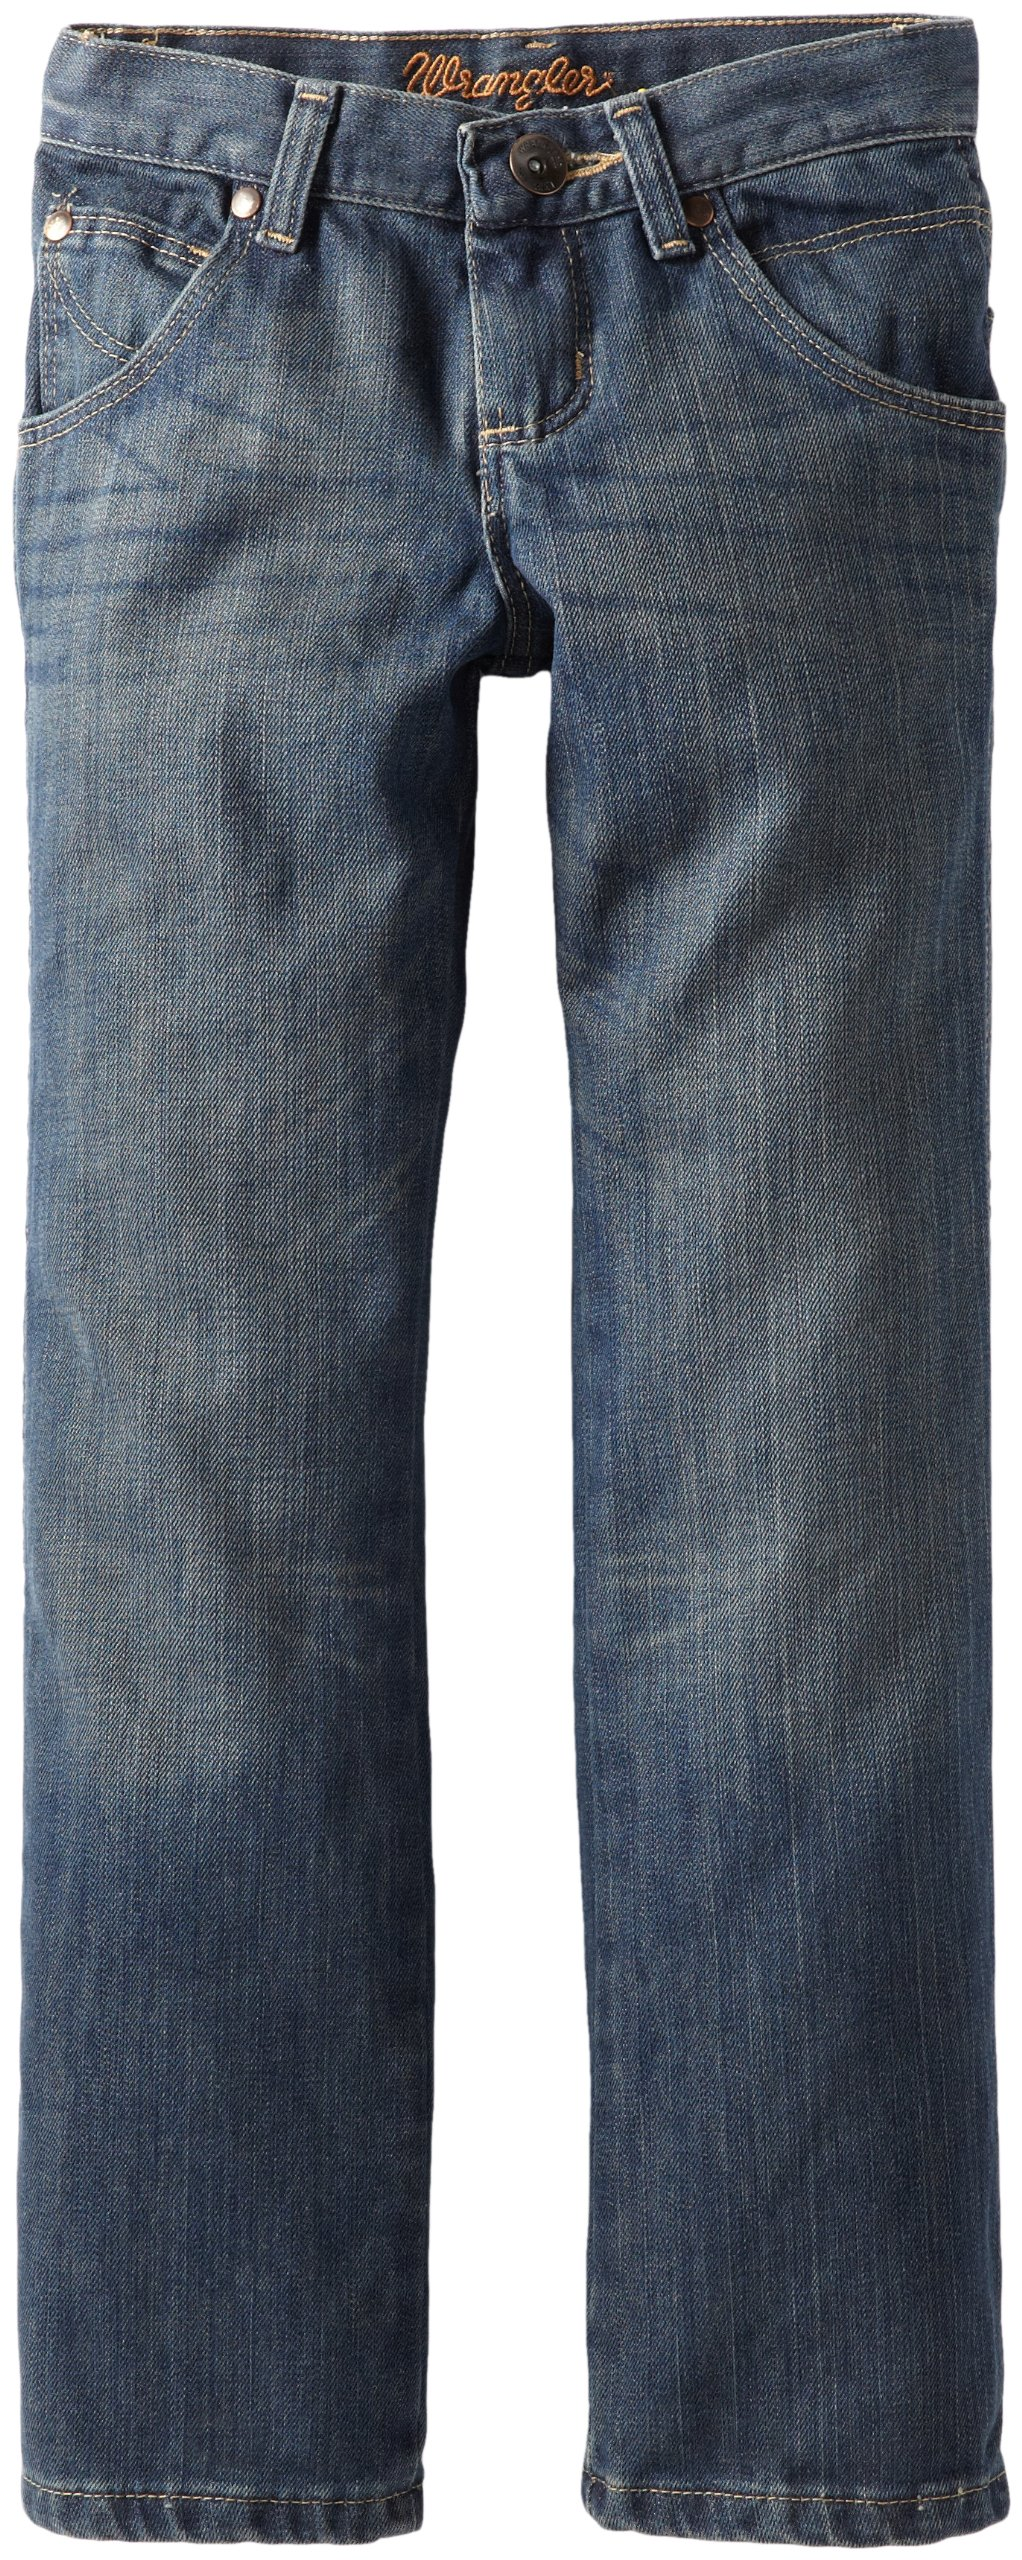 Wrangler Big Boys' Relaxed Fit Boot Cut Jeans, Night Sky, 12